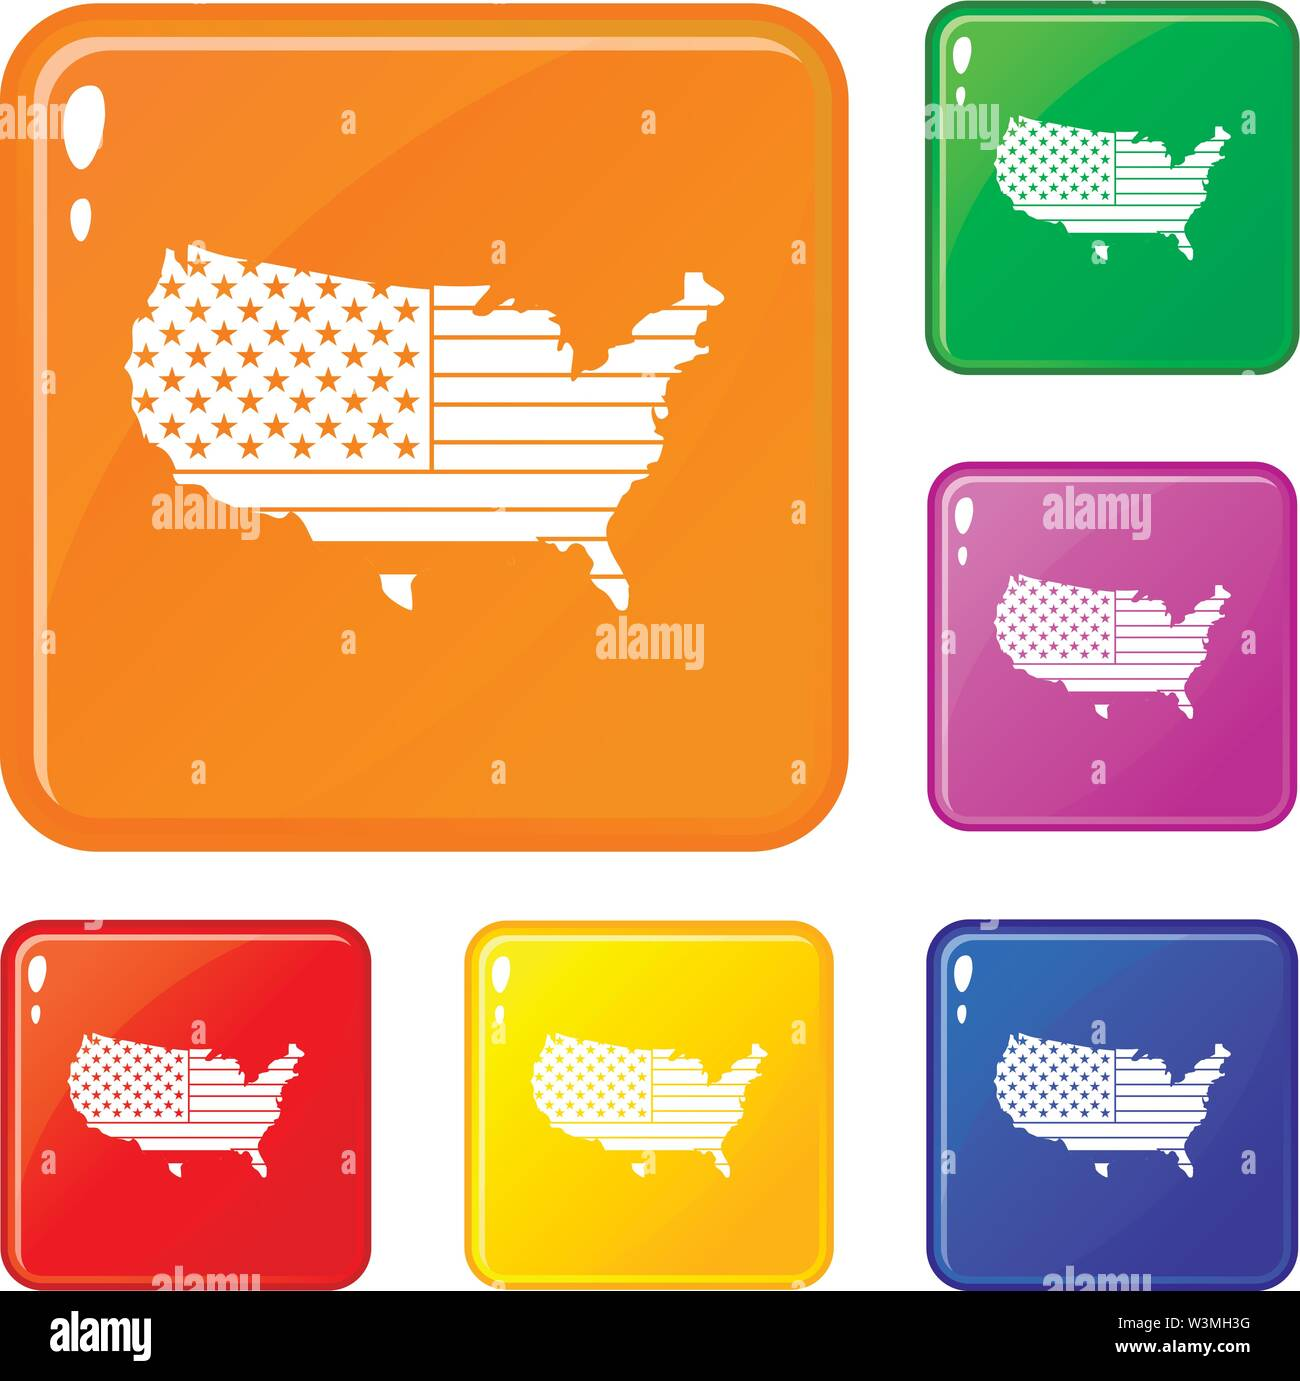 American map icons set vector color - Stock Image